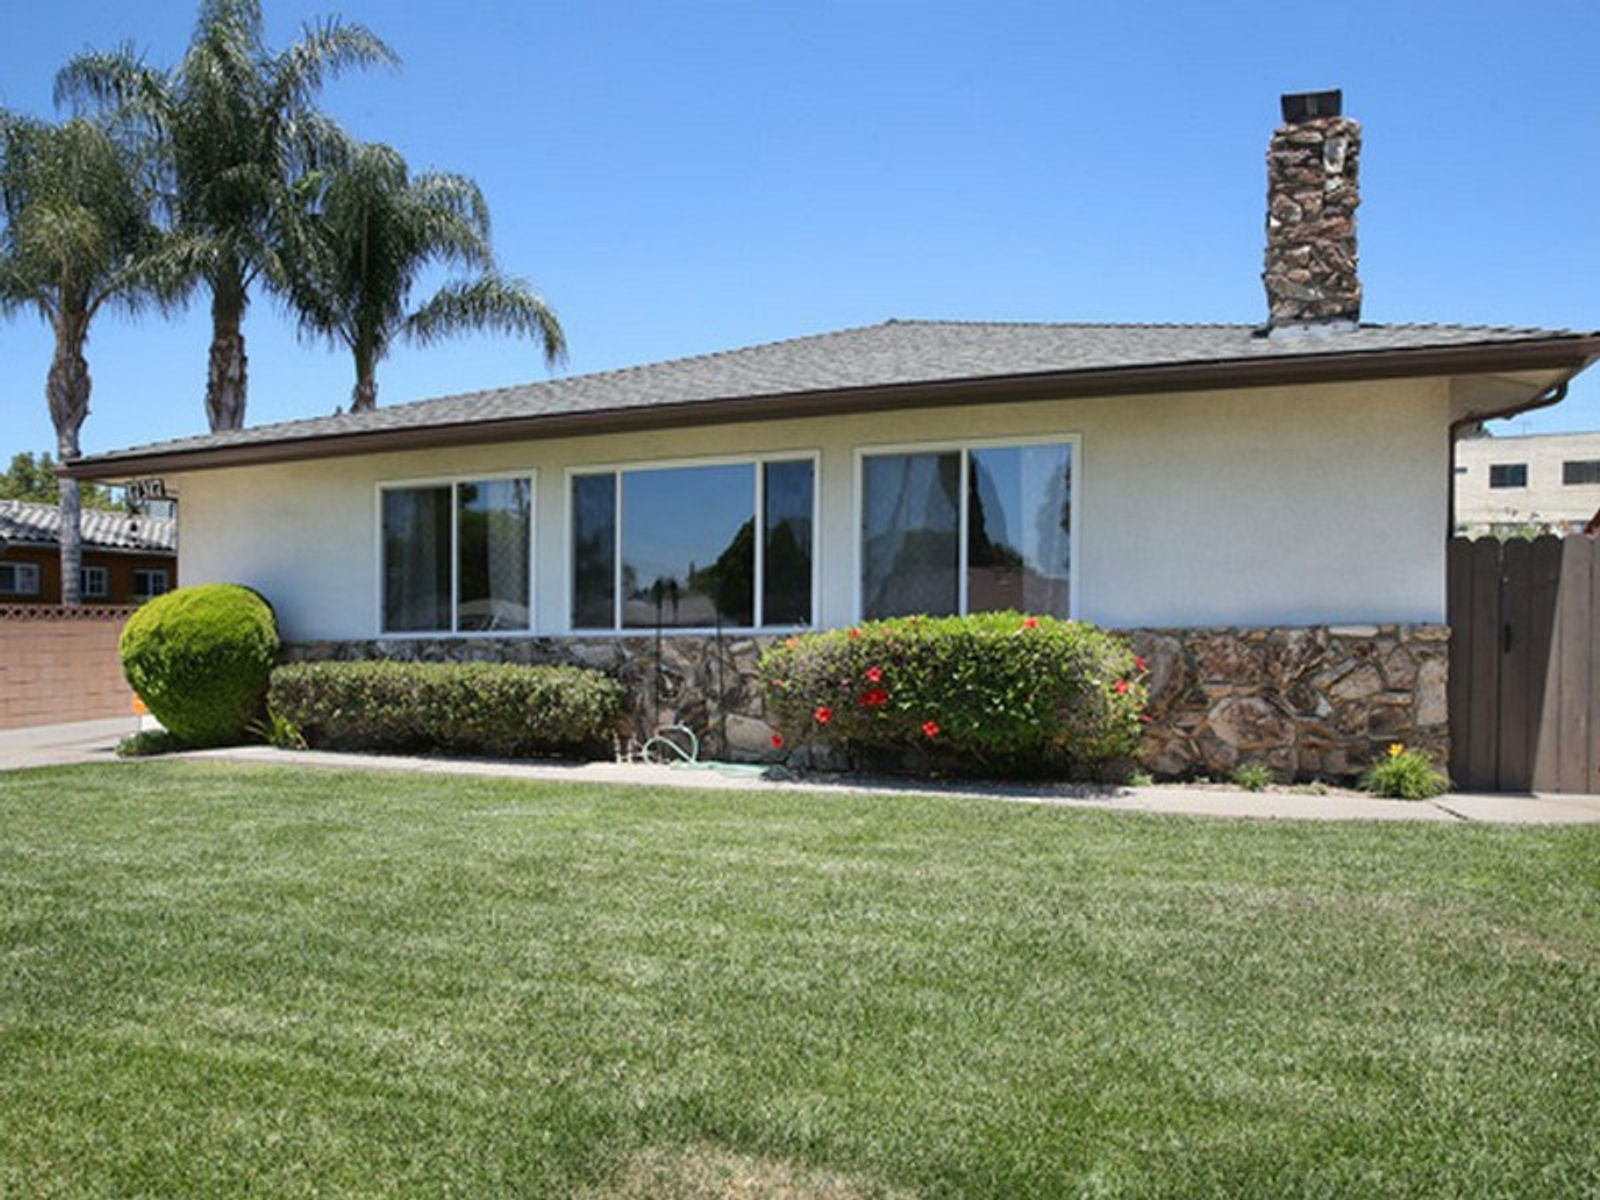 Well Maintained Home, Granada Hills CA Single Family Home - Pasadena Real Estate